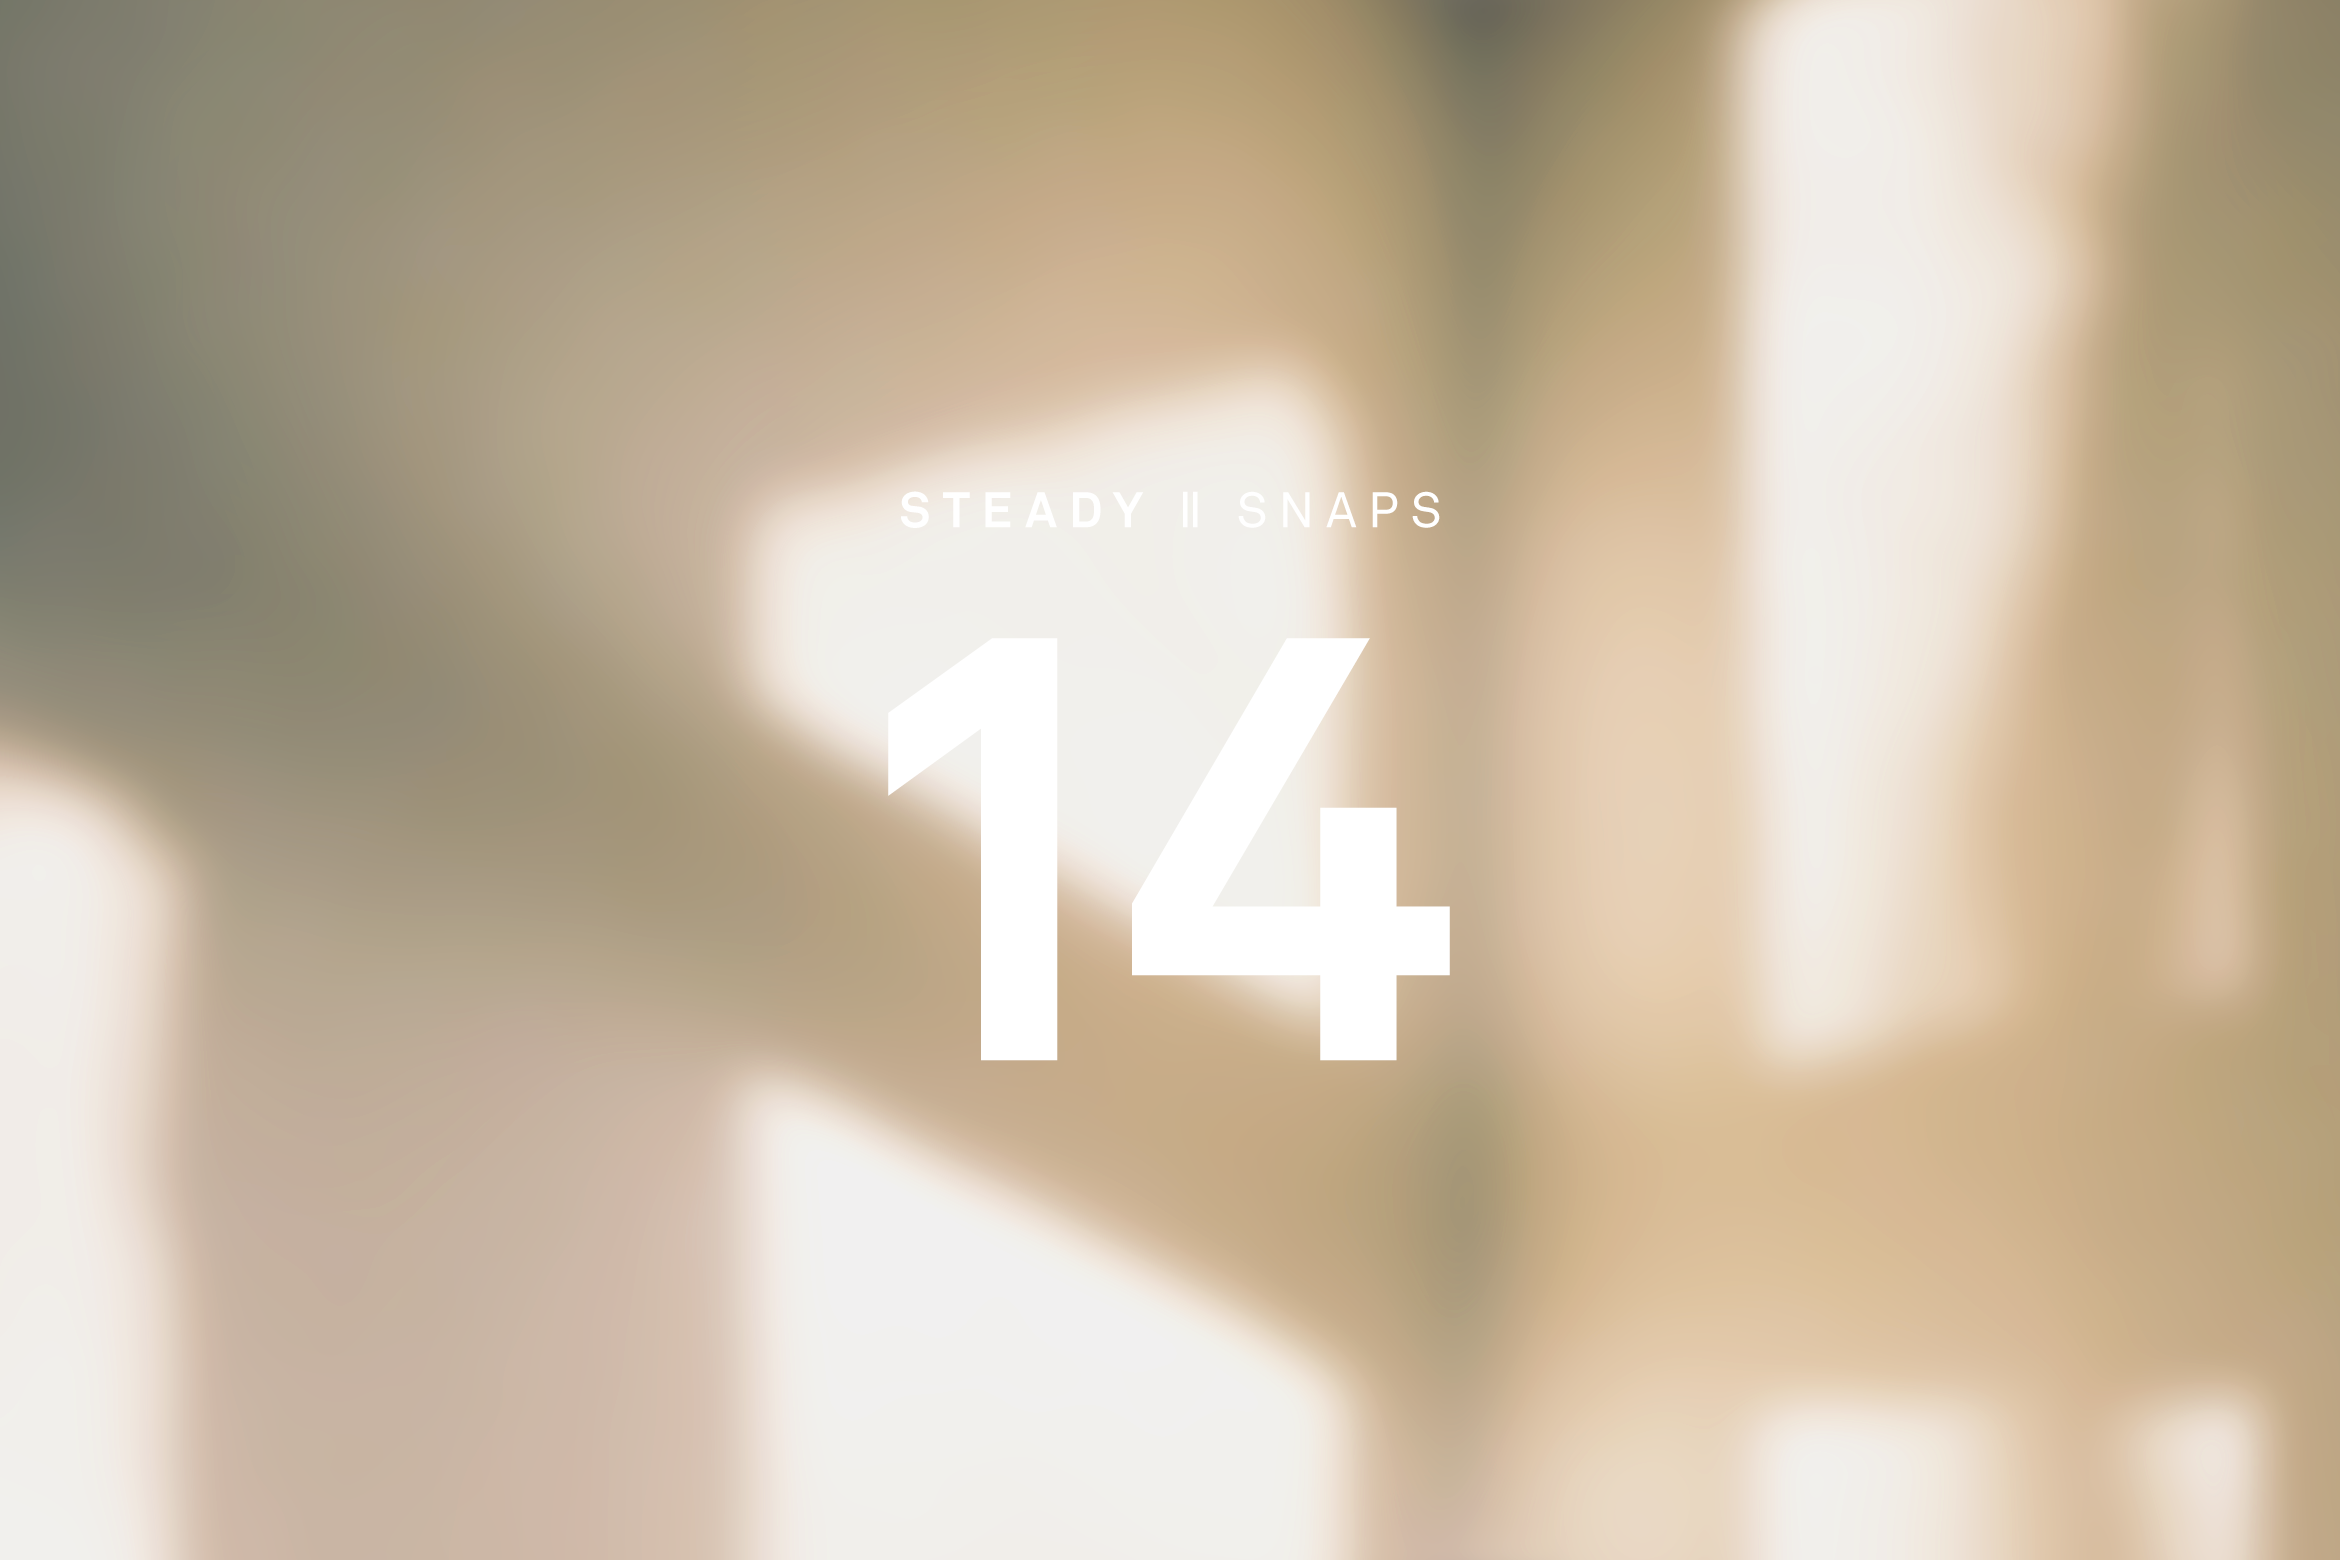 STEADY SNAPS: 14